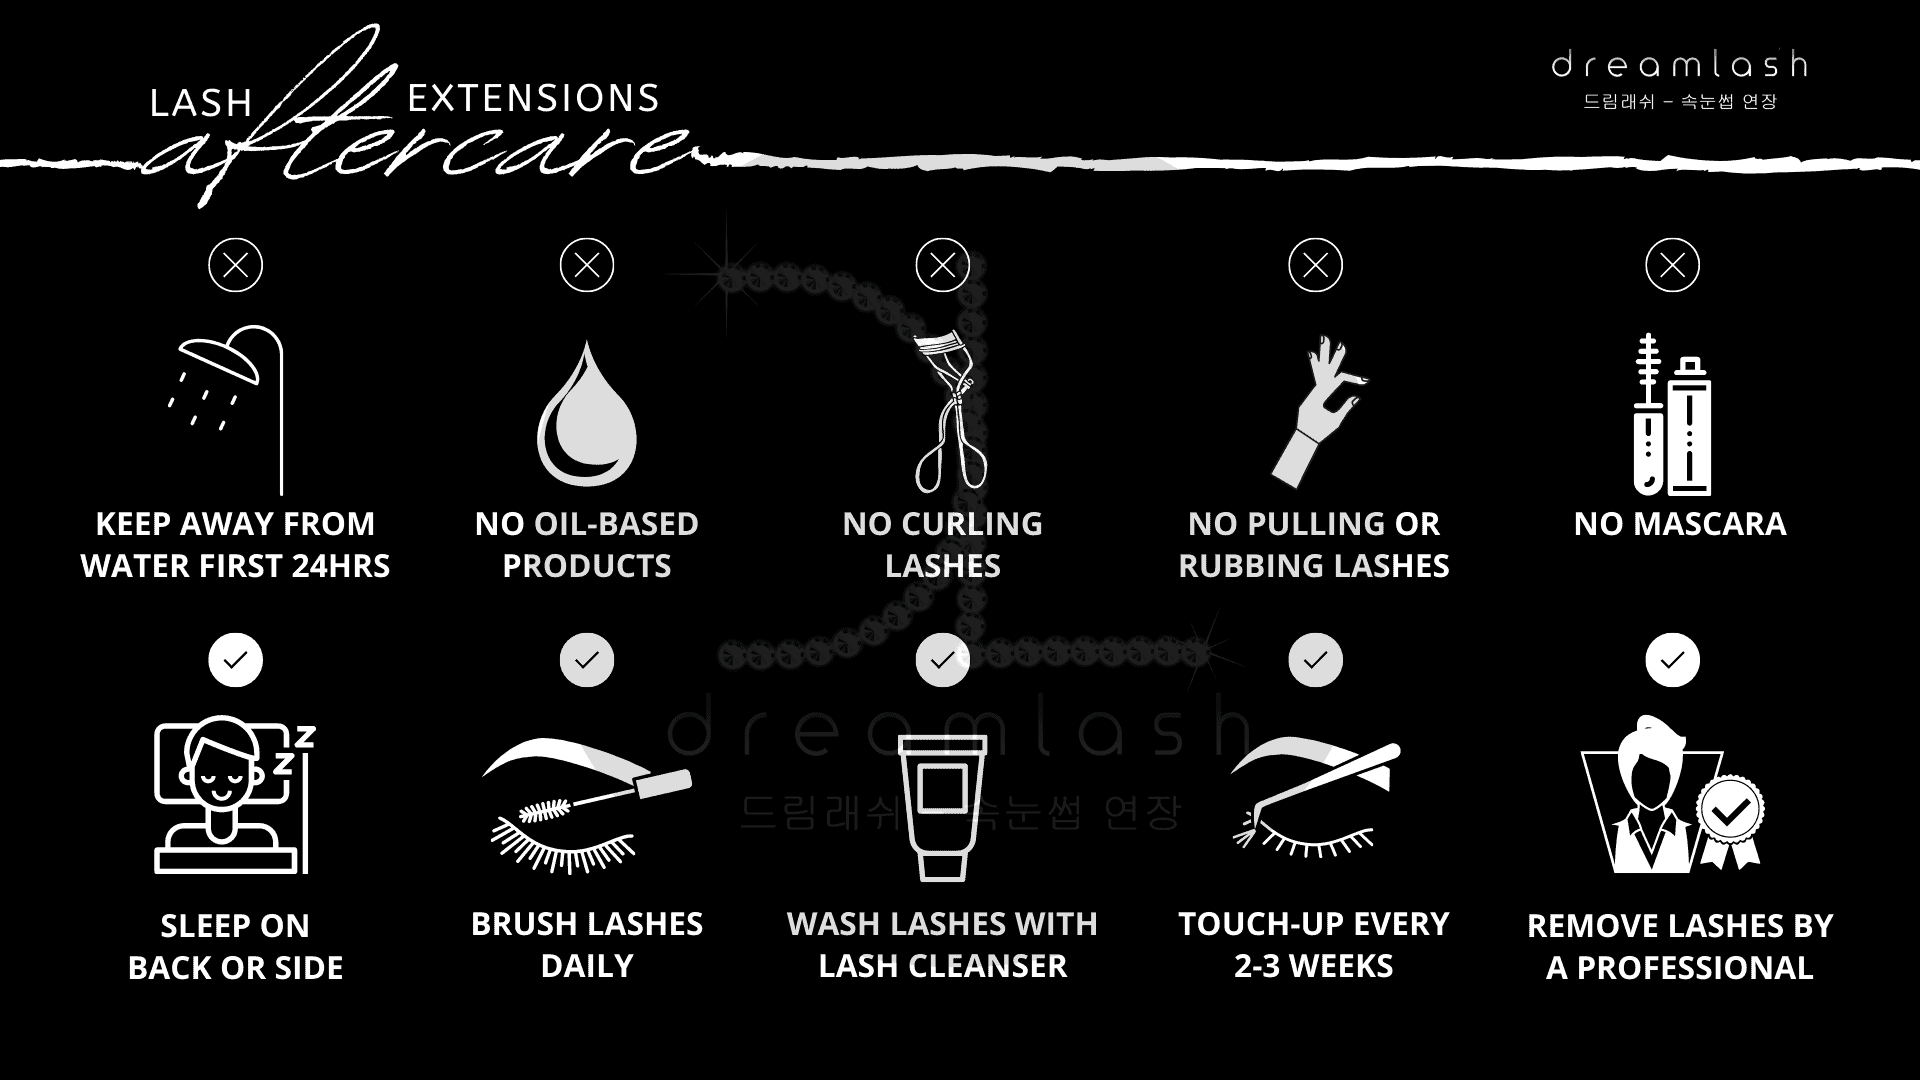 Lash Extensions Aftercare